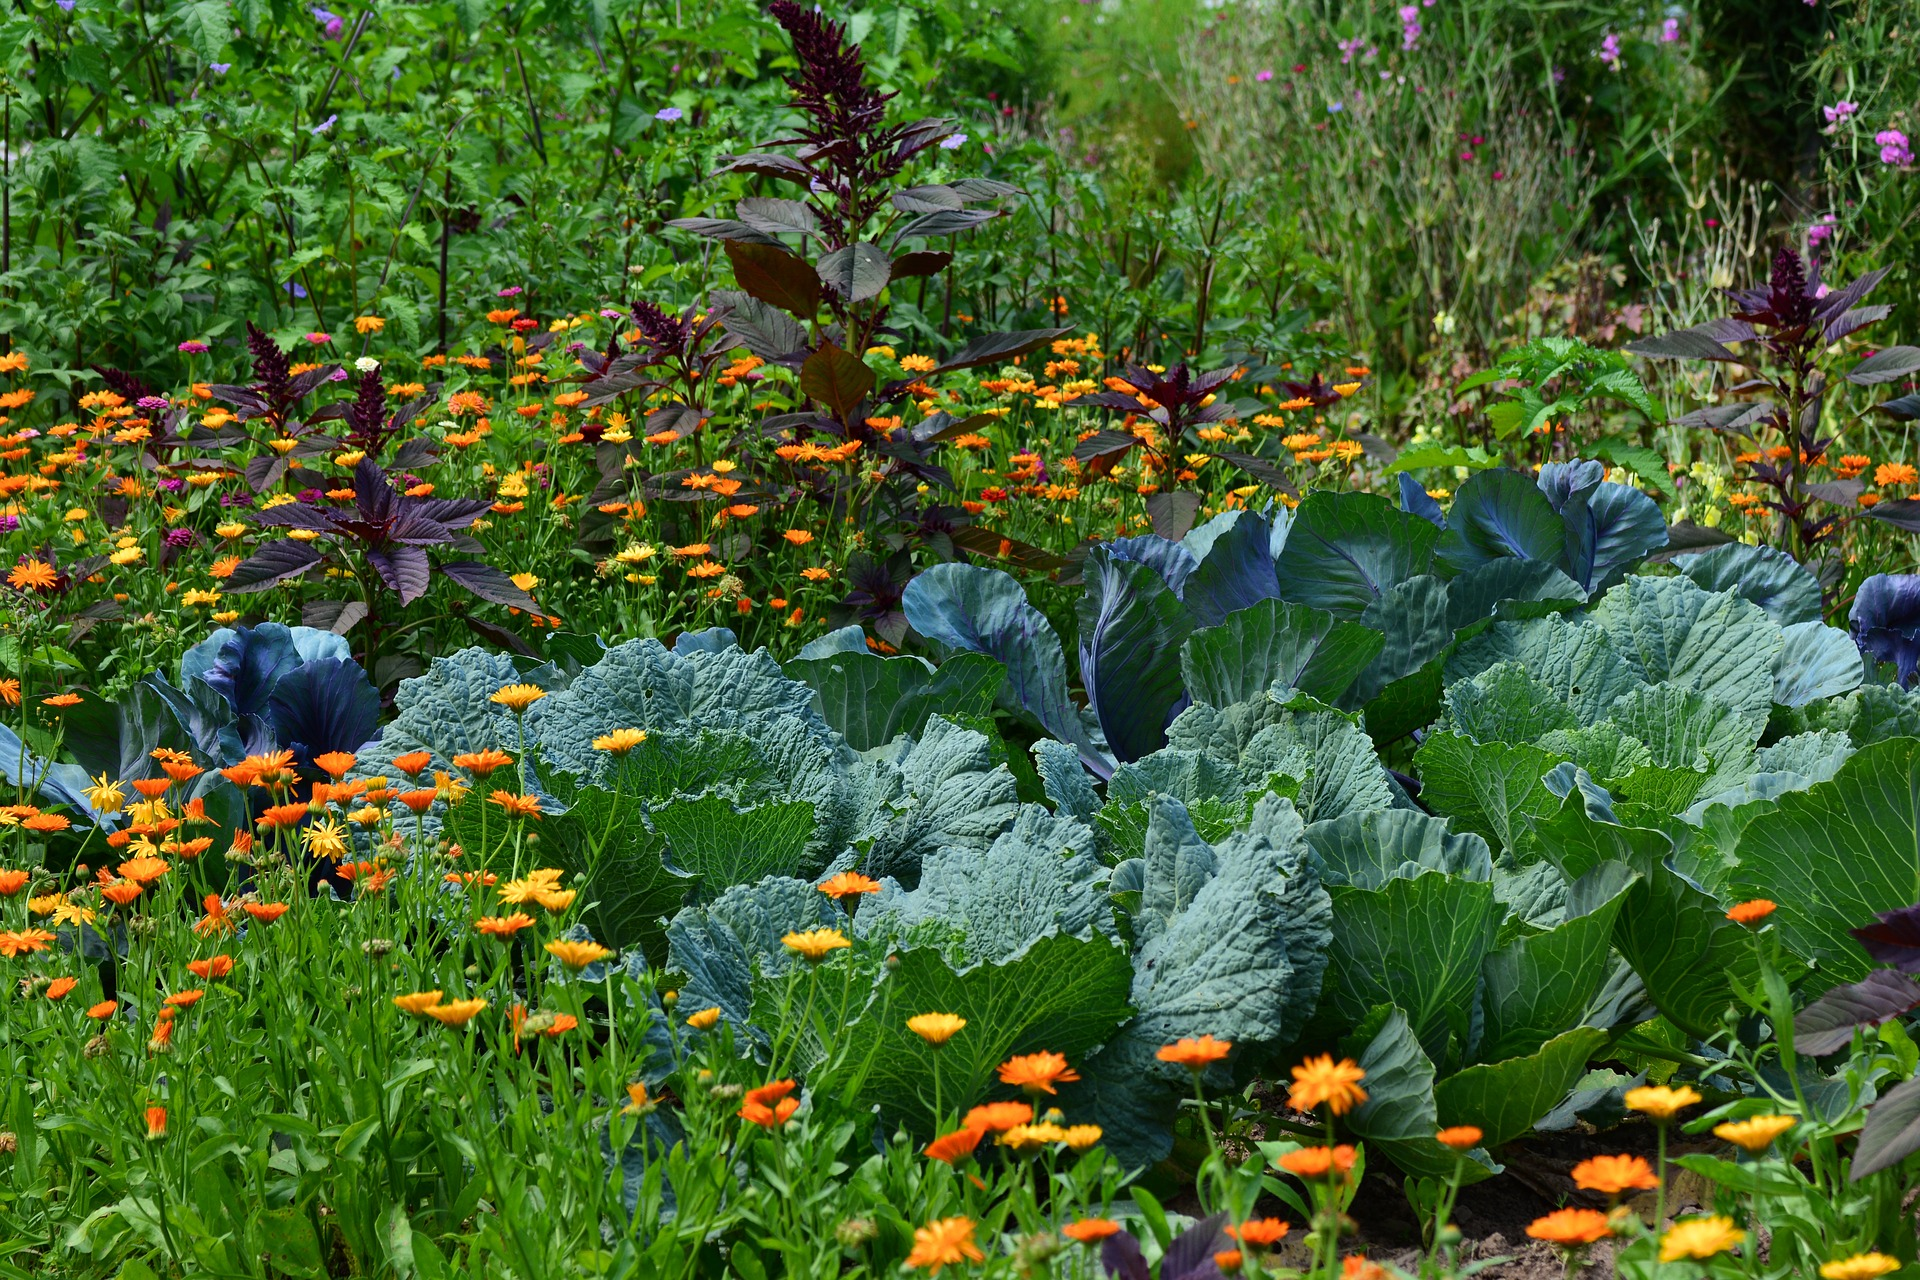 Inter-planting groundhog resistant plants with vegetable can help protect your garden.